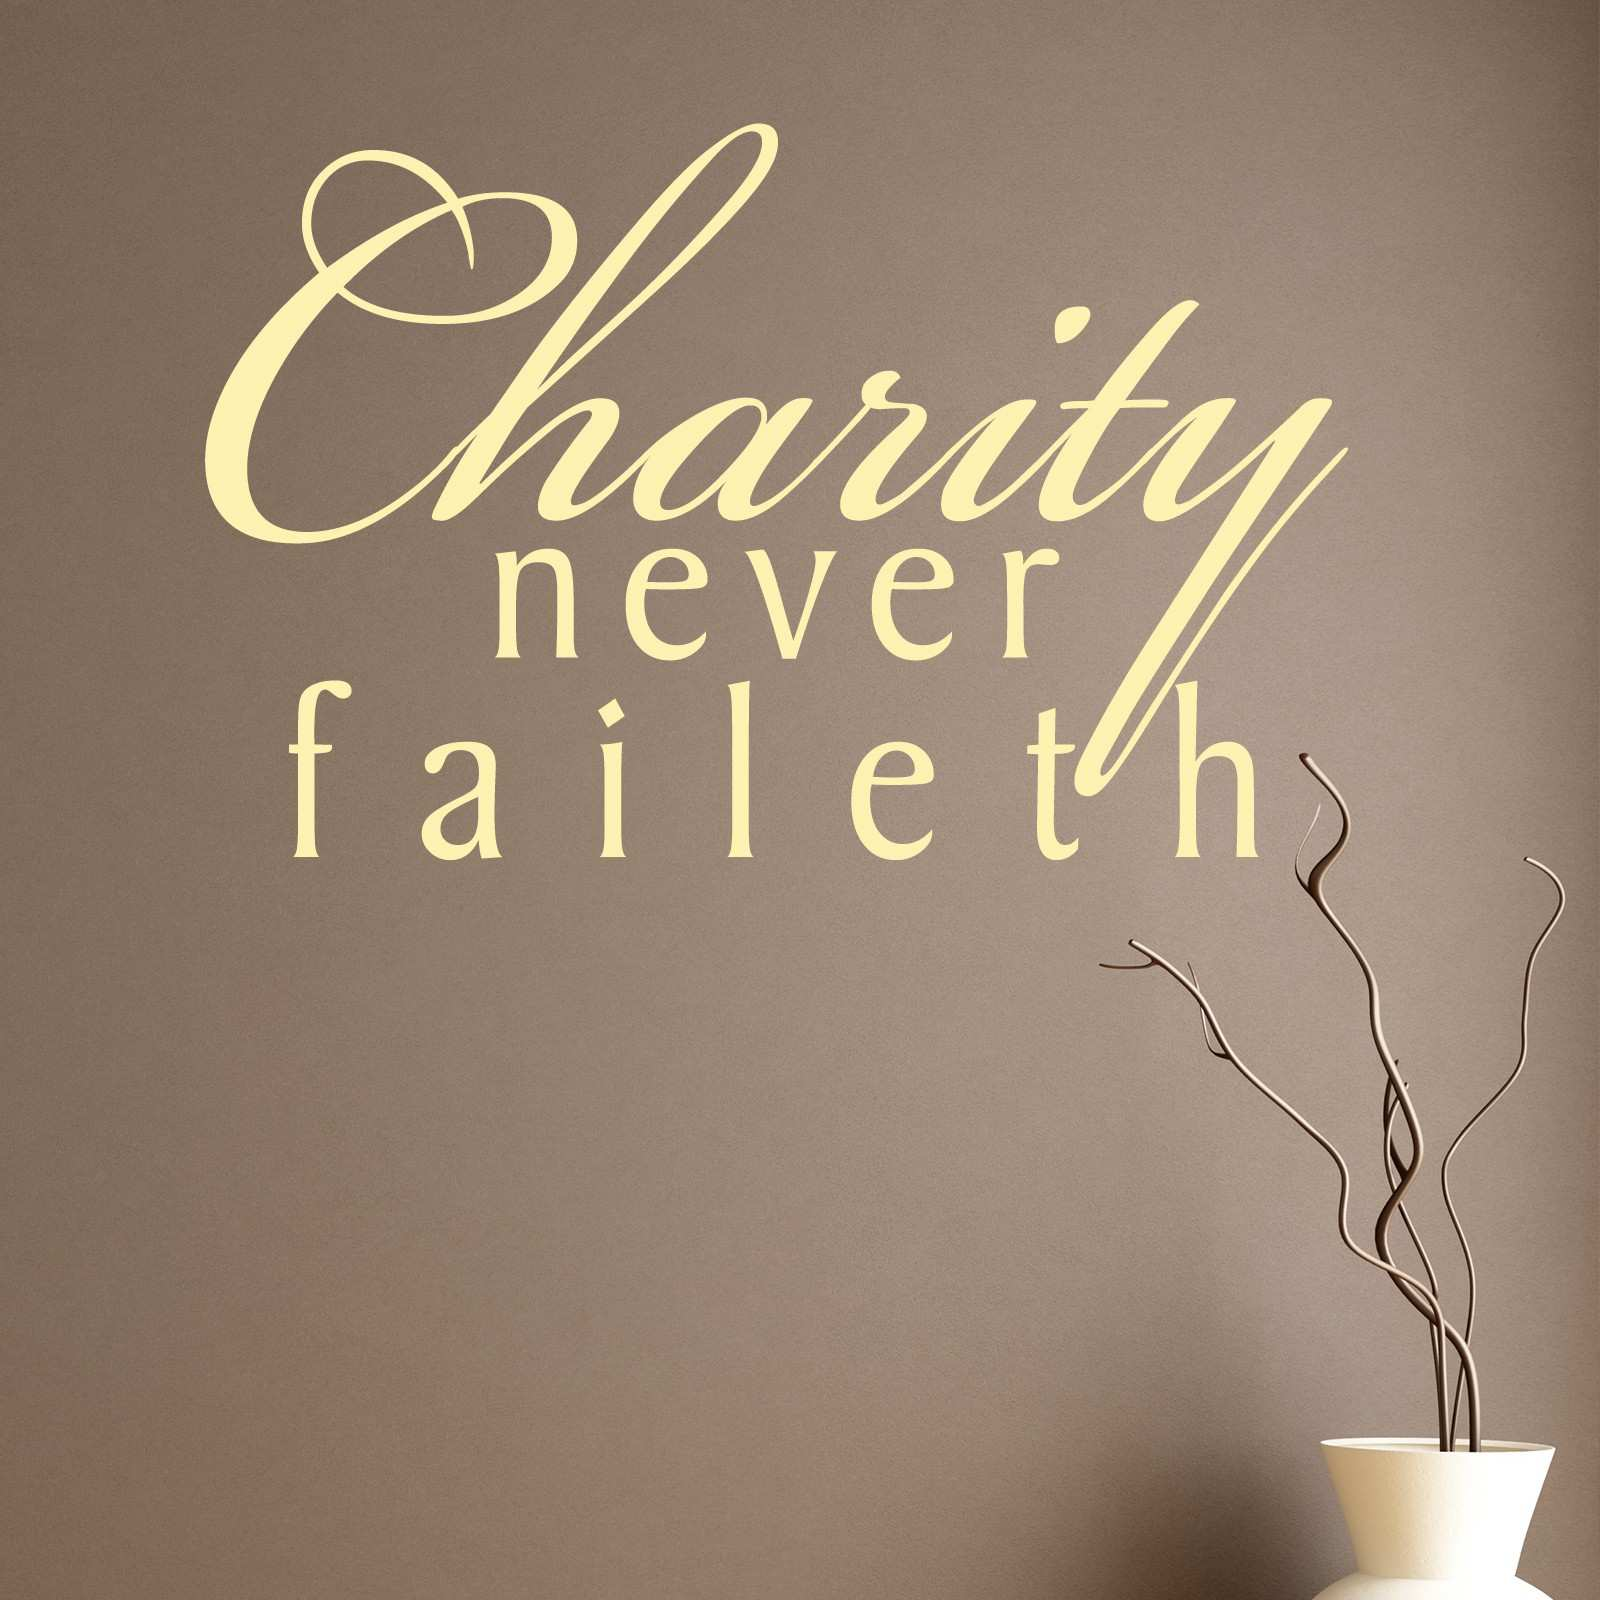 Charity Never Faileth Religious Quote Wall Sticker World of Wall